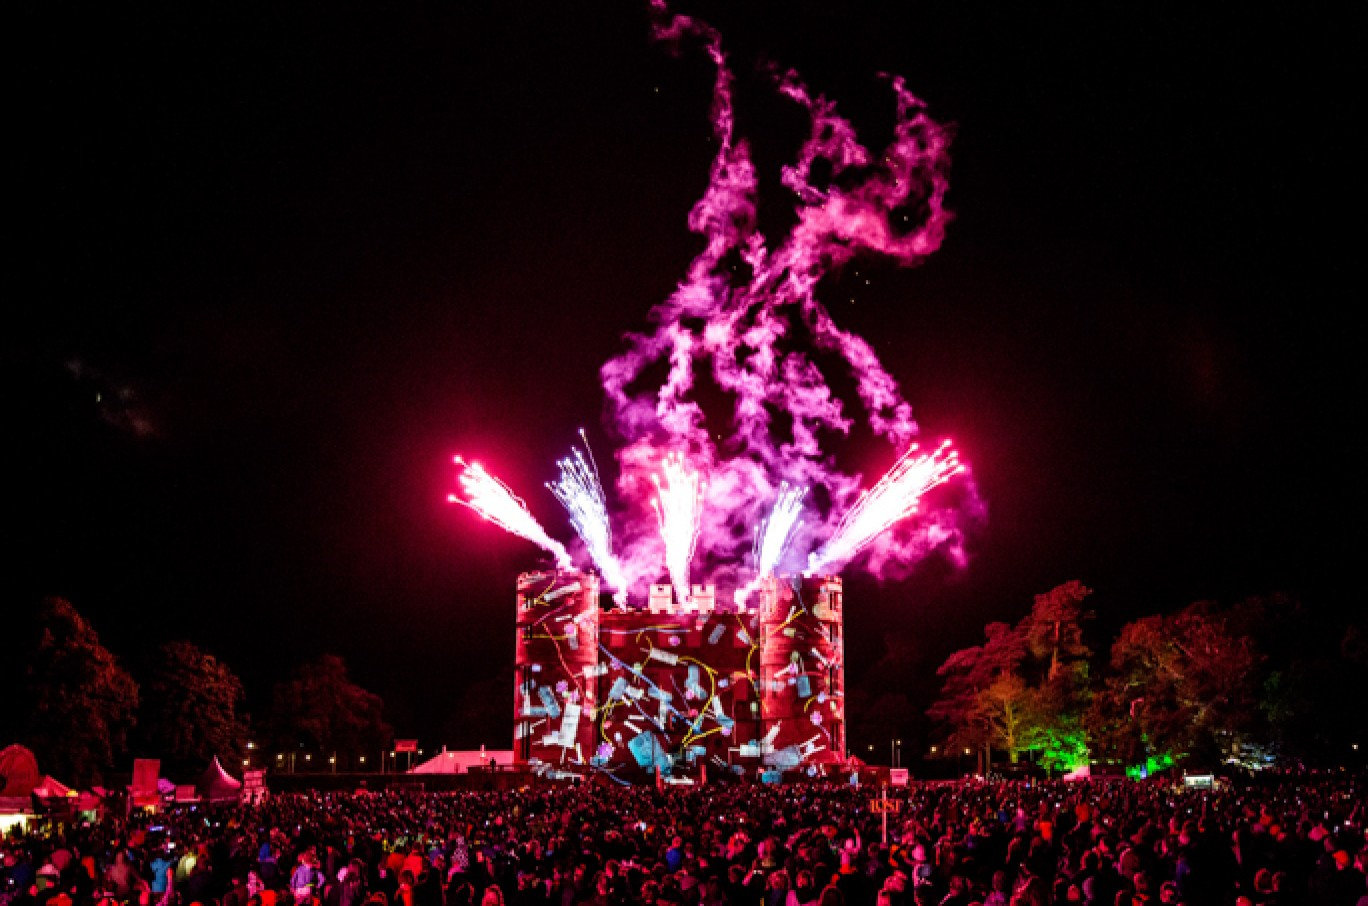 6_152-camp-bestival-2017-fireworks-rb-f61a27891501585129